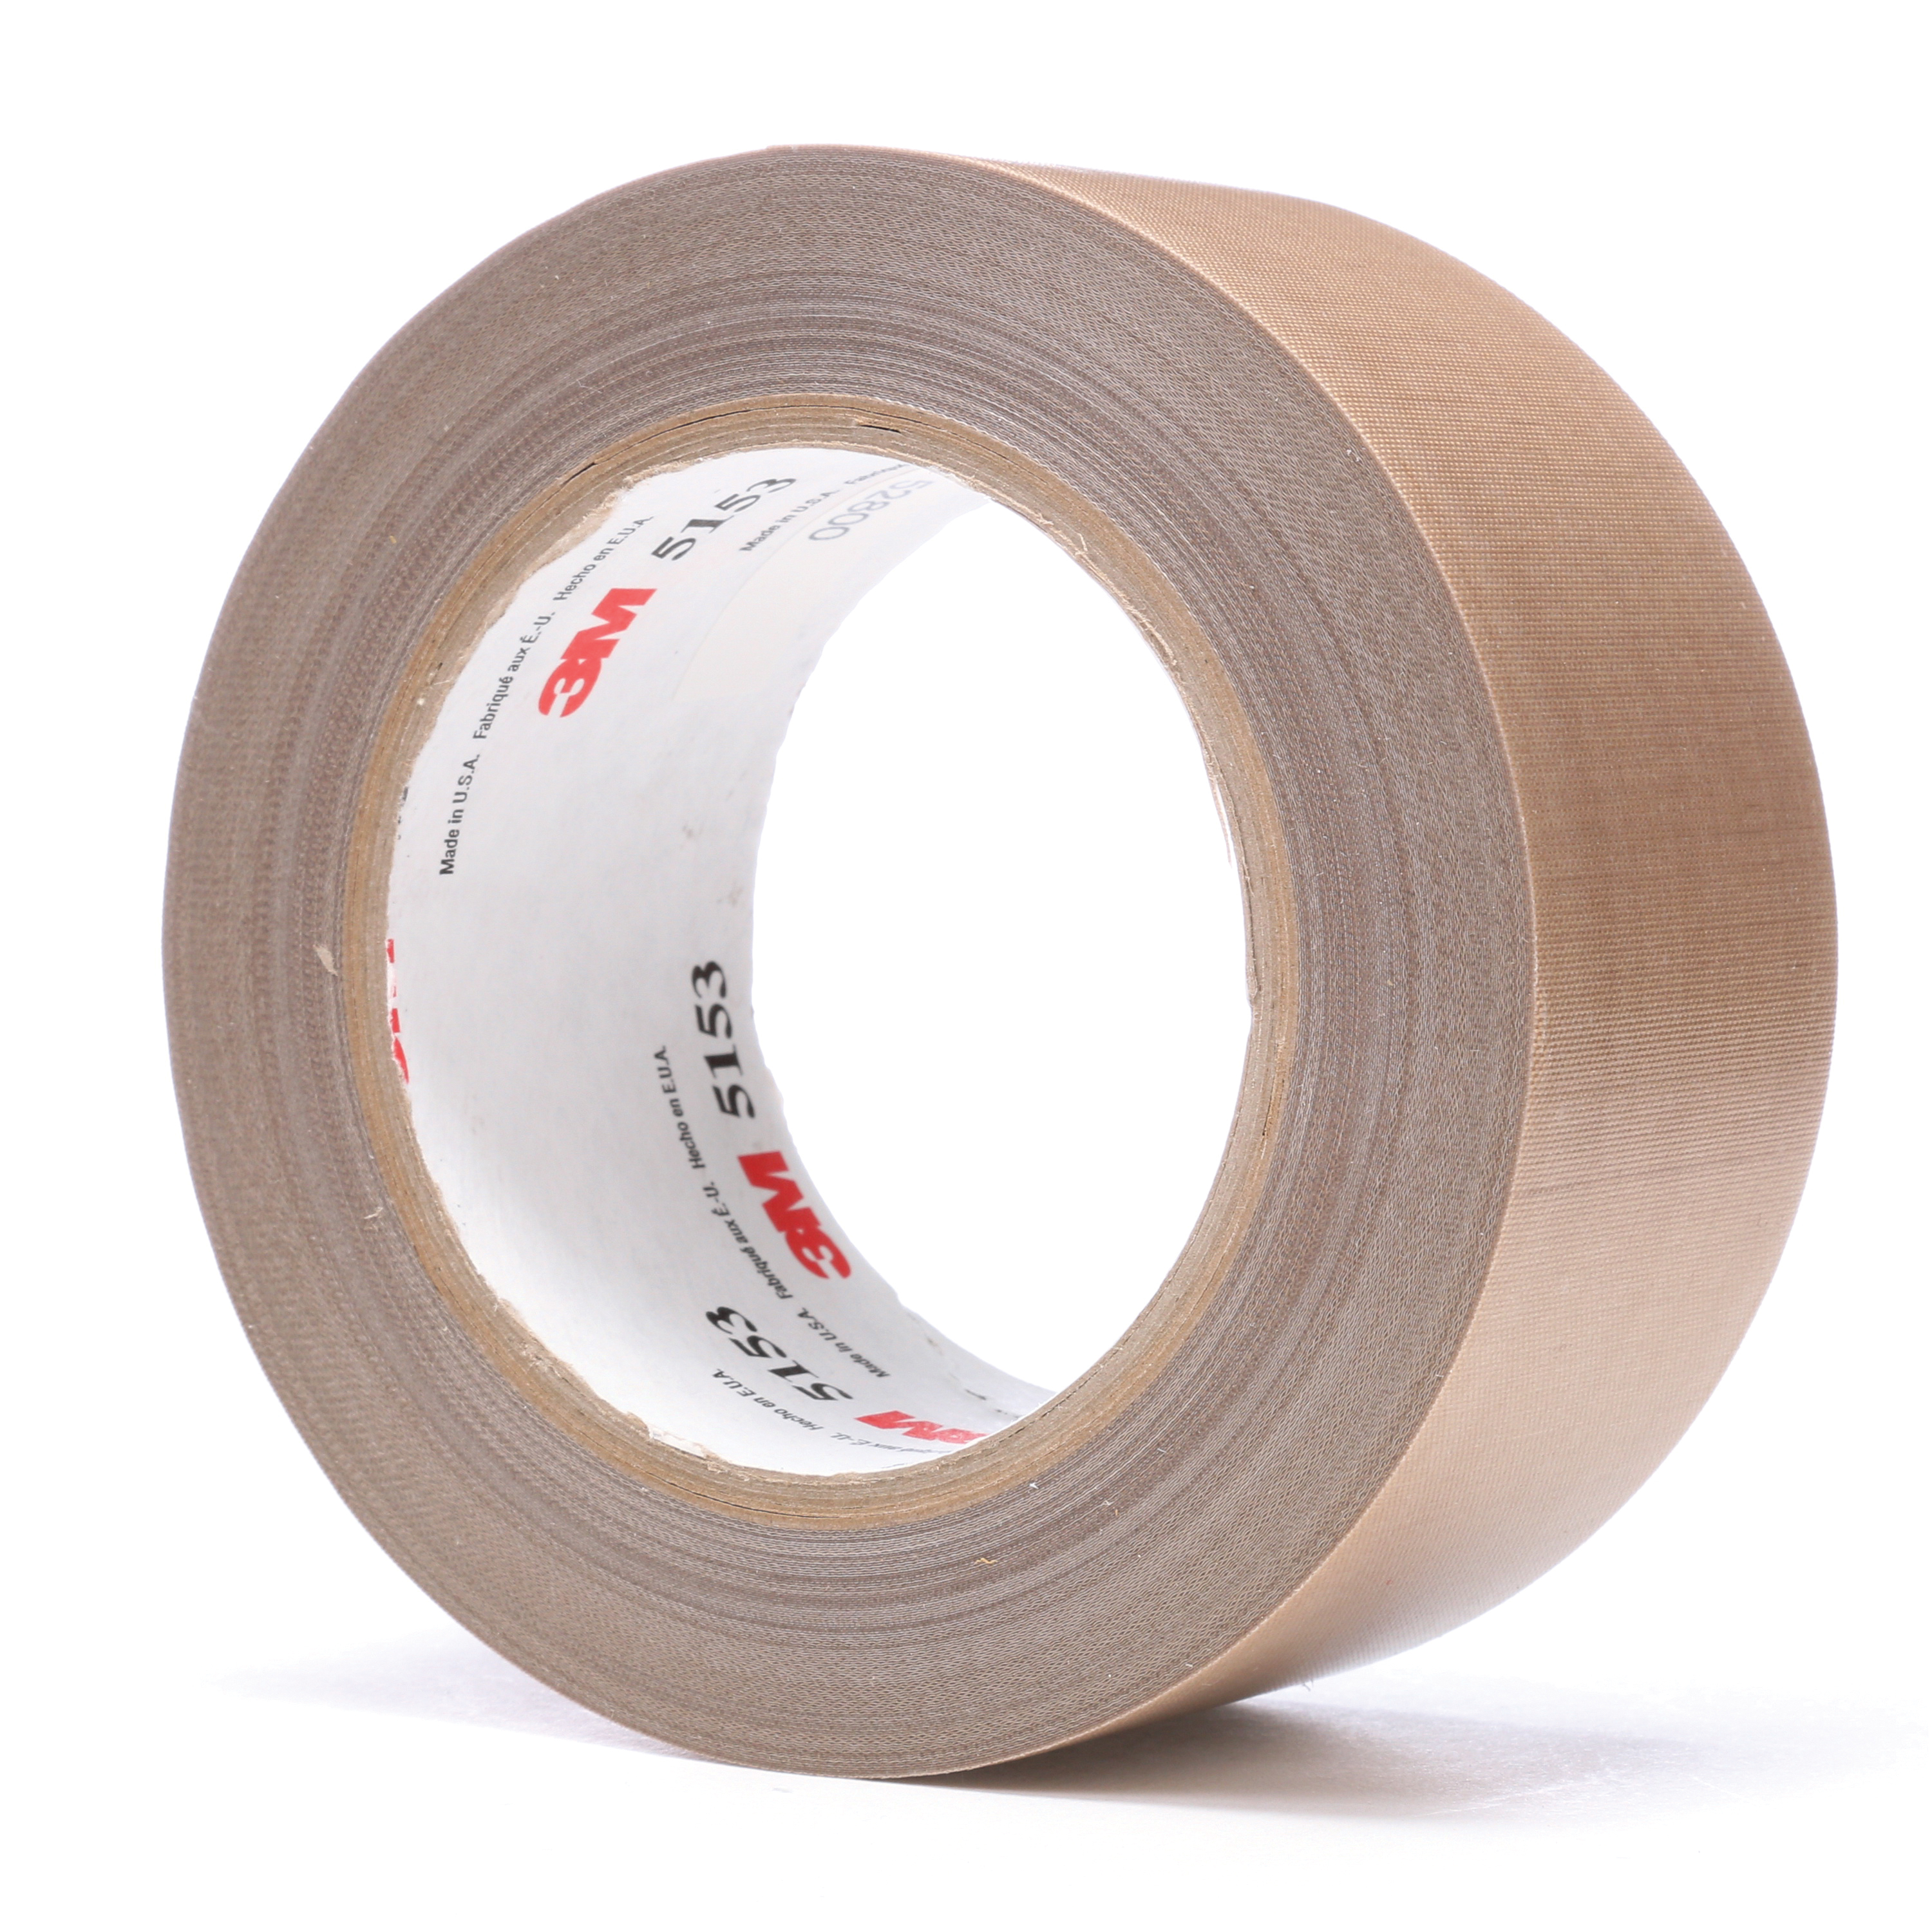 3M™ 021200-45637 General Purpose Glass Cloth Tape, 36 yd L x 2 in W, 8 mil THK, Silicone Adhesive, 5.8 mil Glass Cloth Impregnated with PTFE Backing, Light Brown